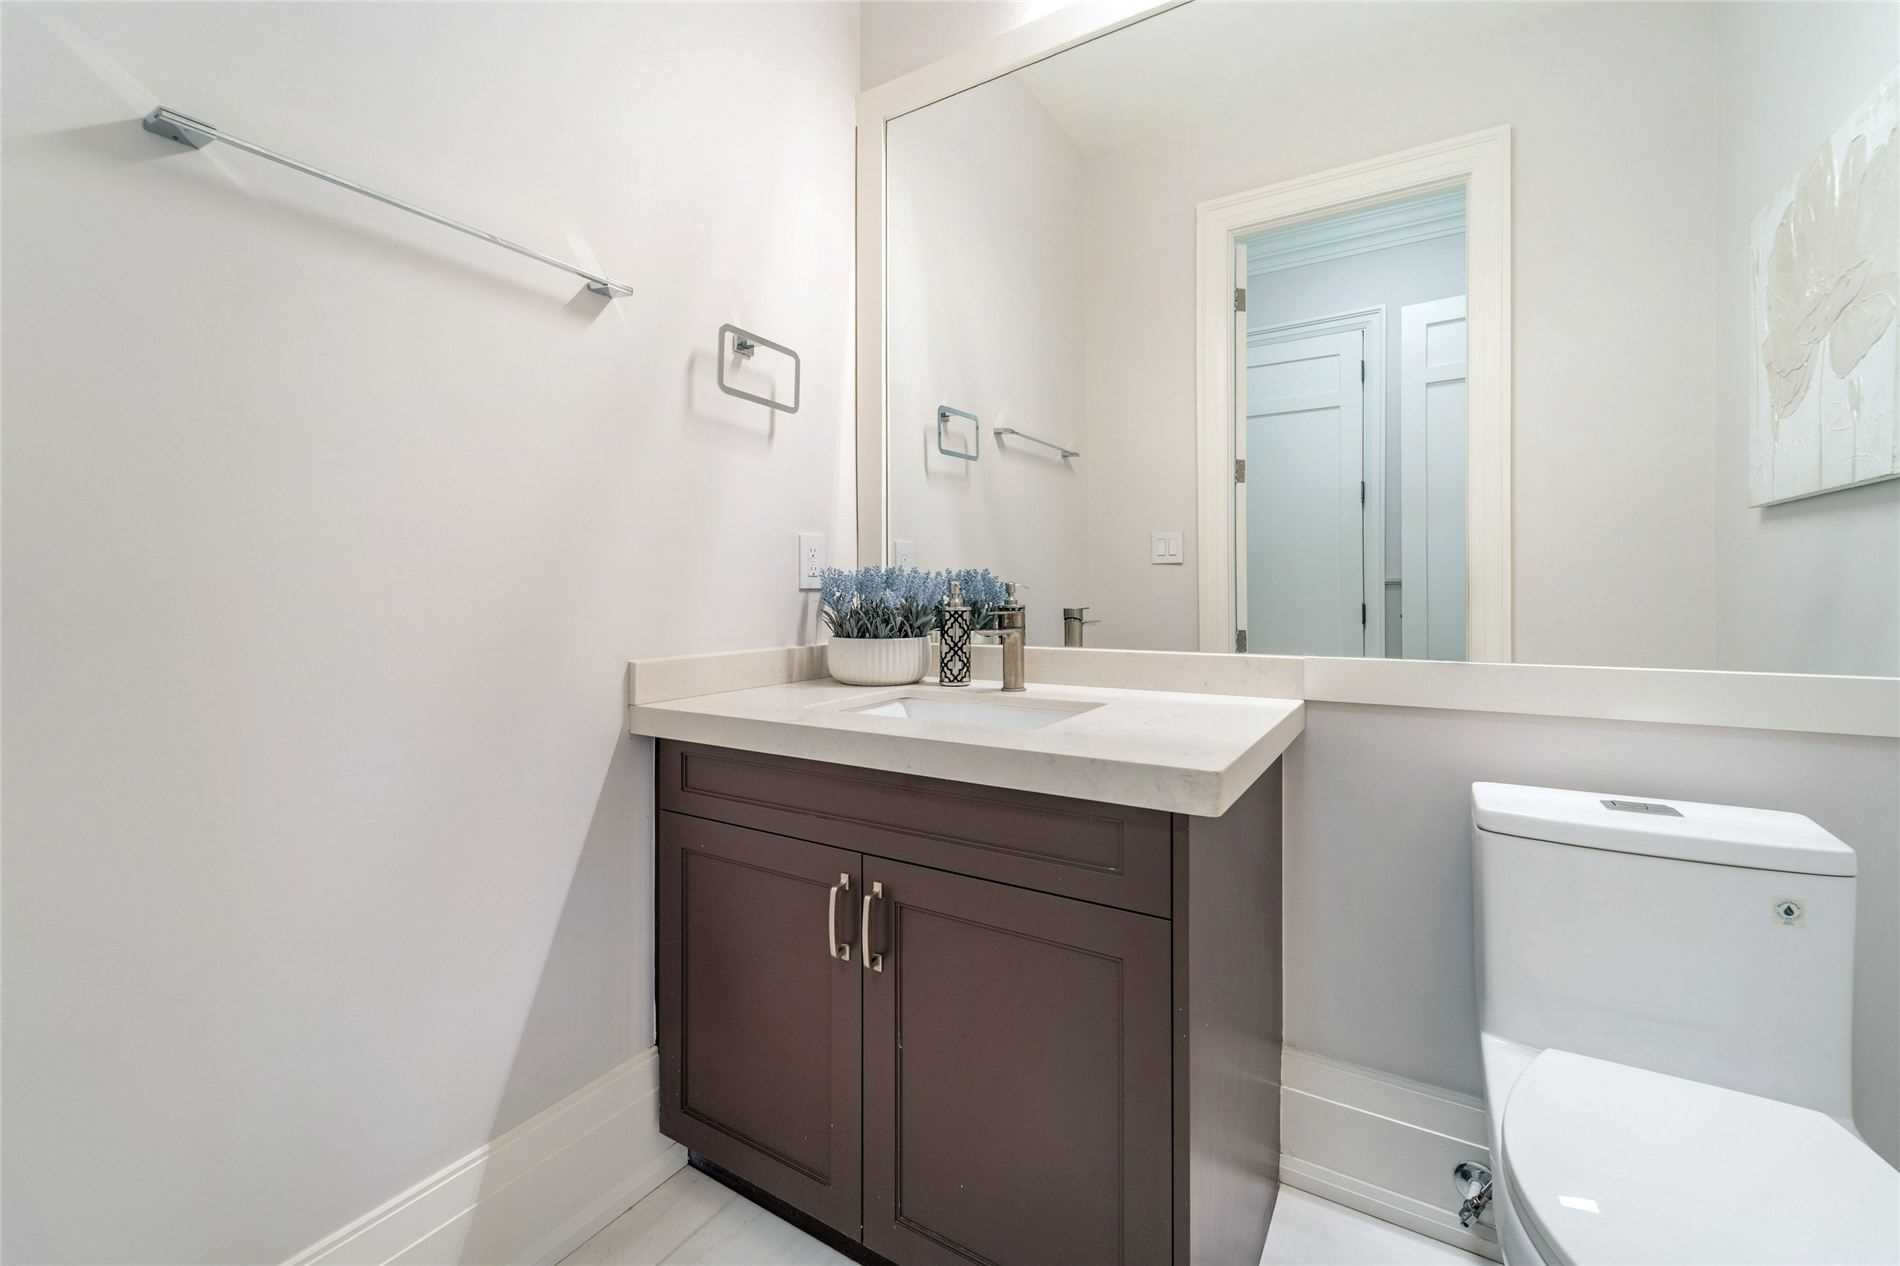 Detached house For Sale In Oakville - 459 Candler Rd, Oakville, Ontario, Canada L6J4X7 , 4 Bedrooms Bedrooms, ,6 BathroomsBathrooms,Detached,For Sale,Candler